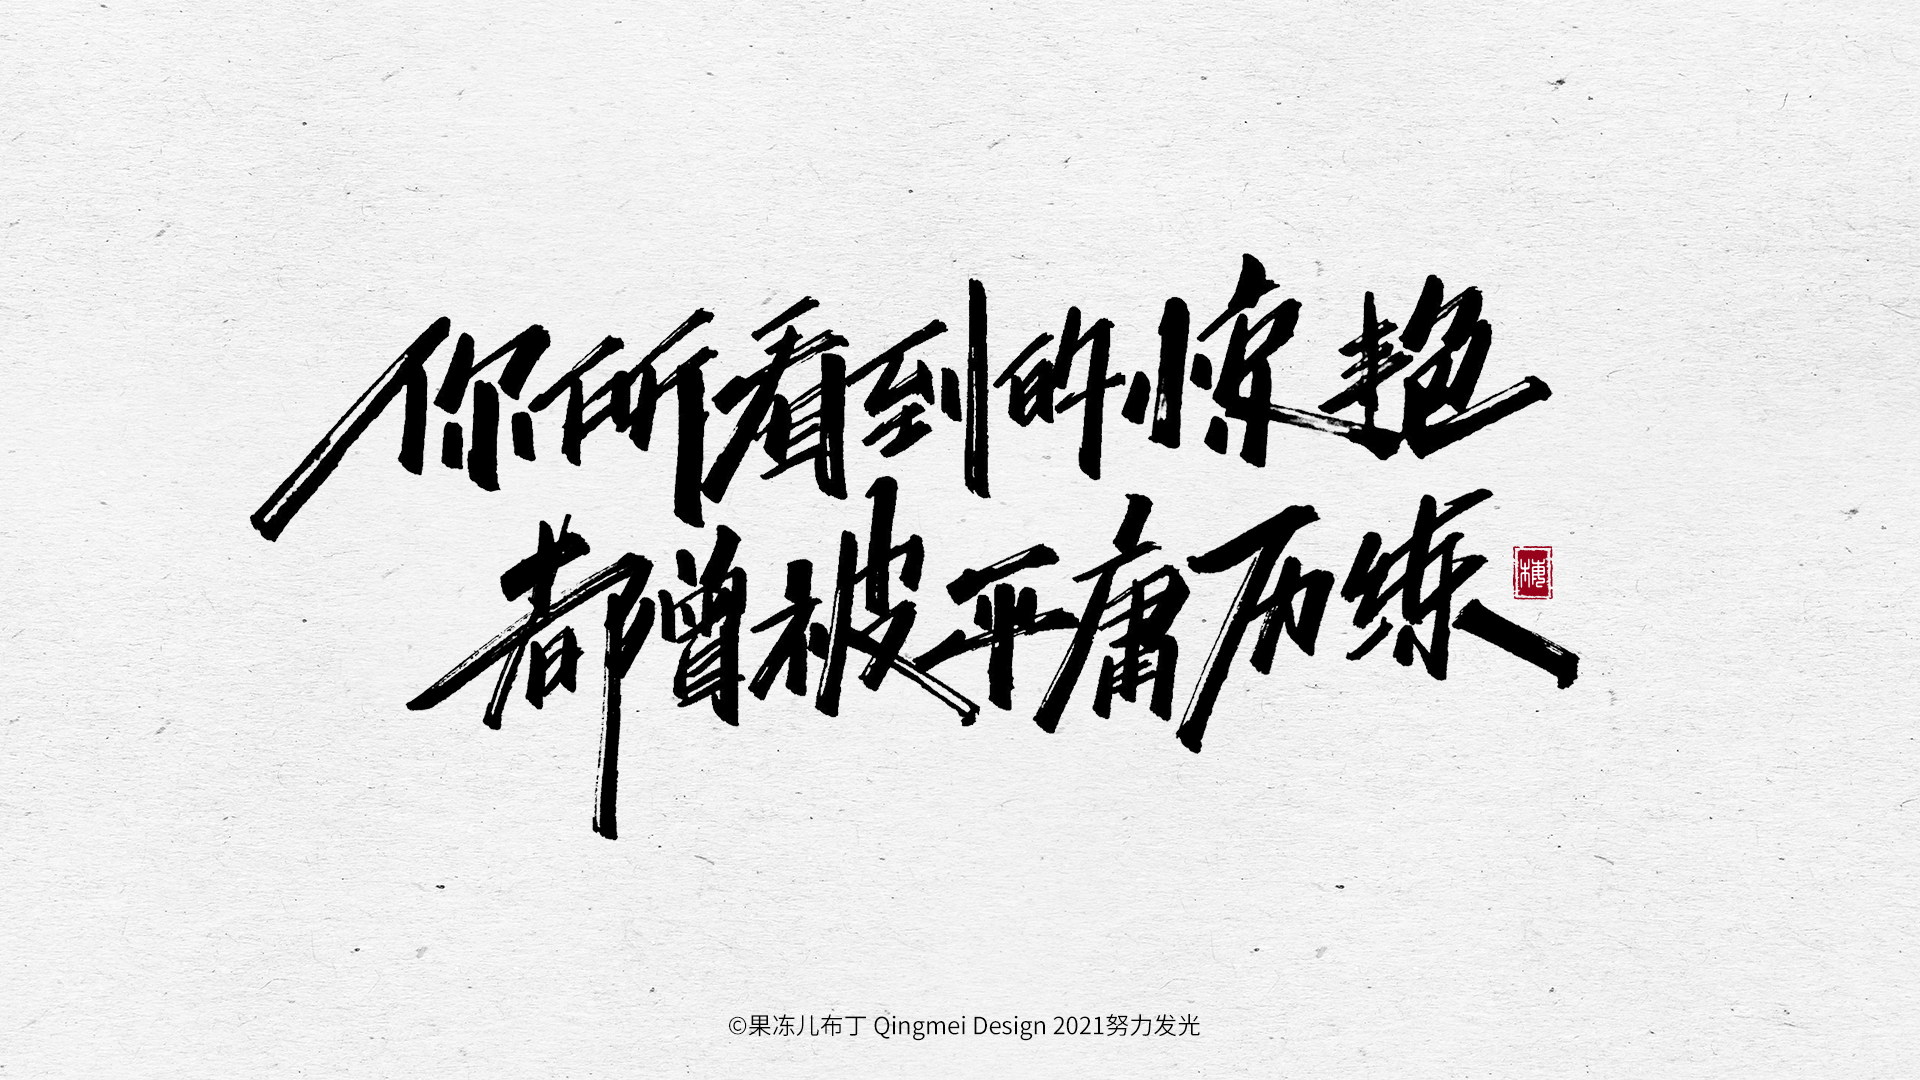 11P Collection of the latest Chinese font design schemes in 2021 #.373